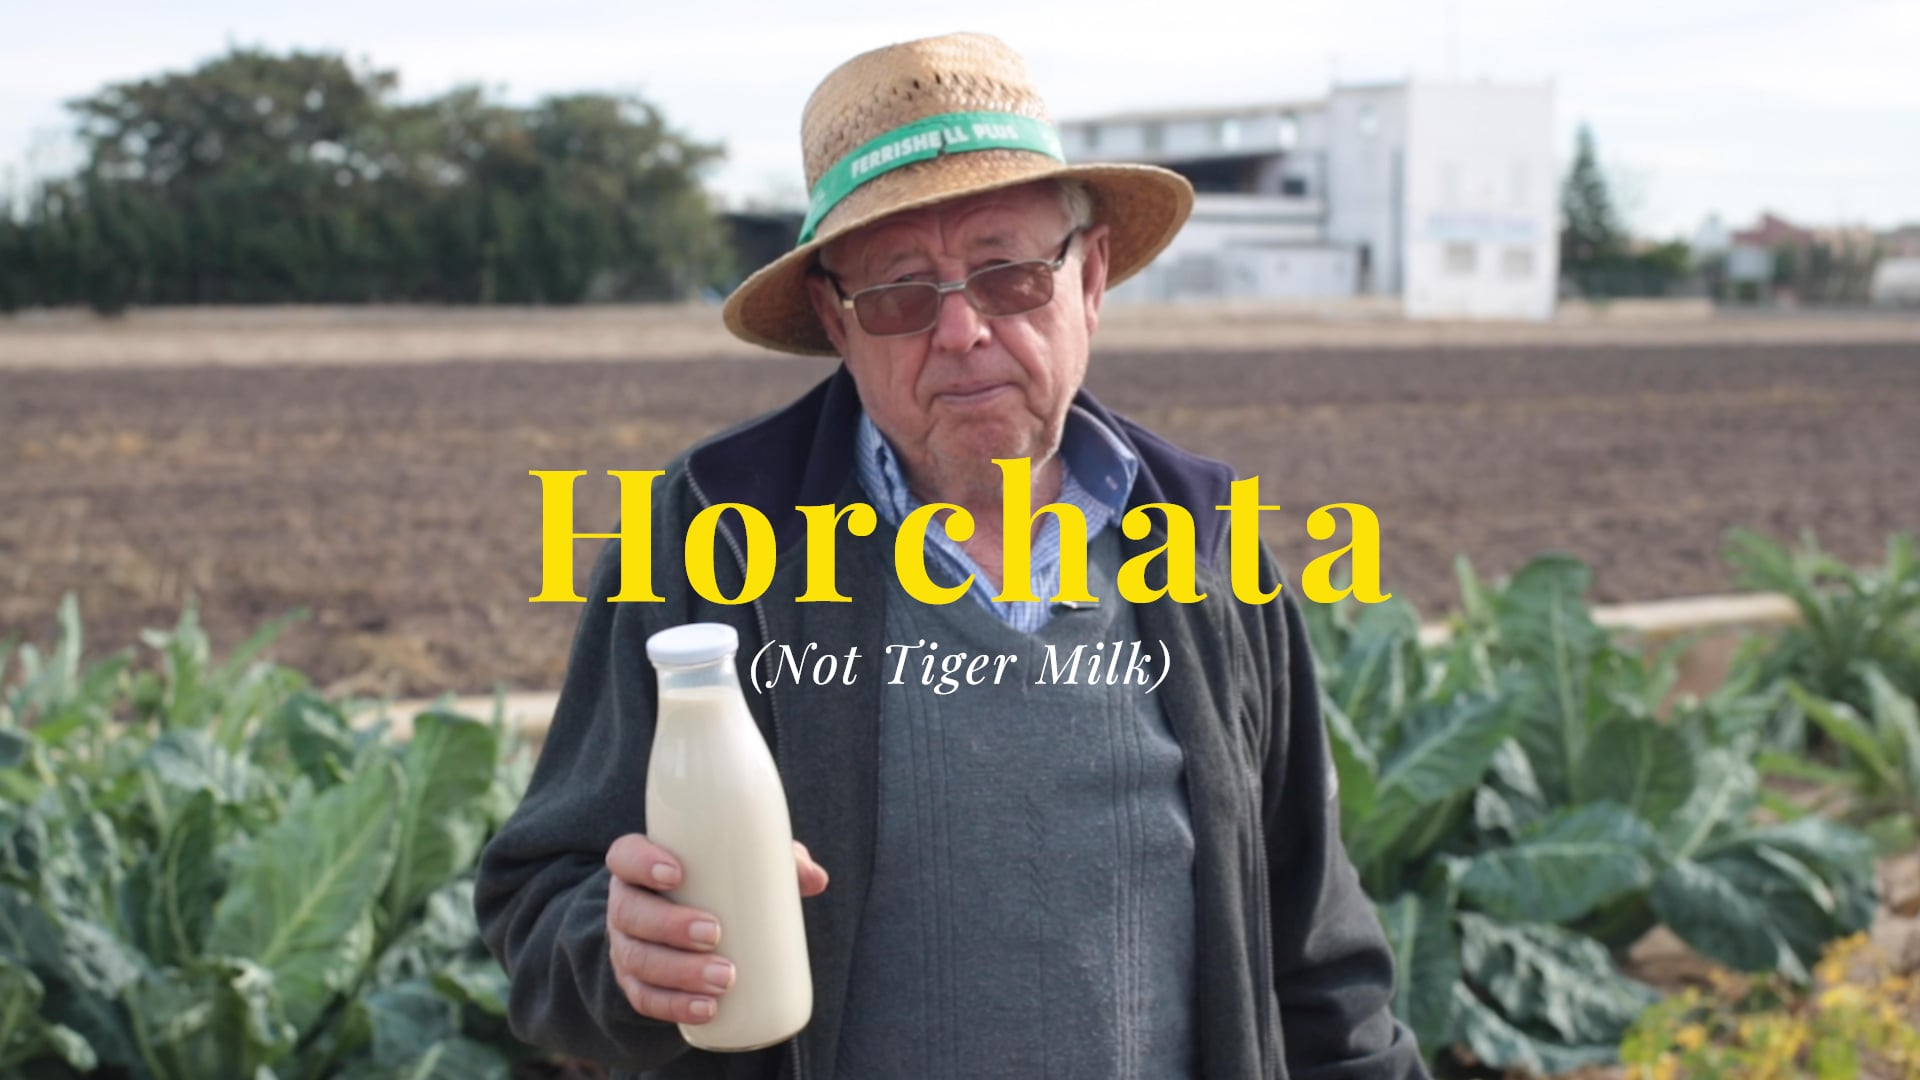 Horchata (Not Tiger Milk)